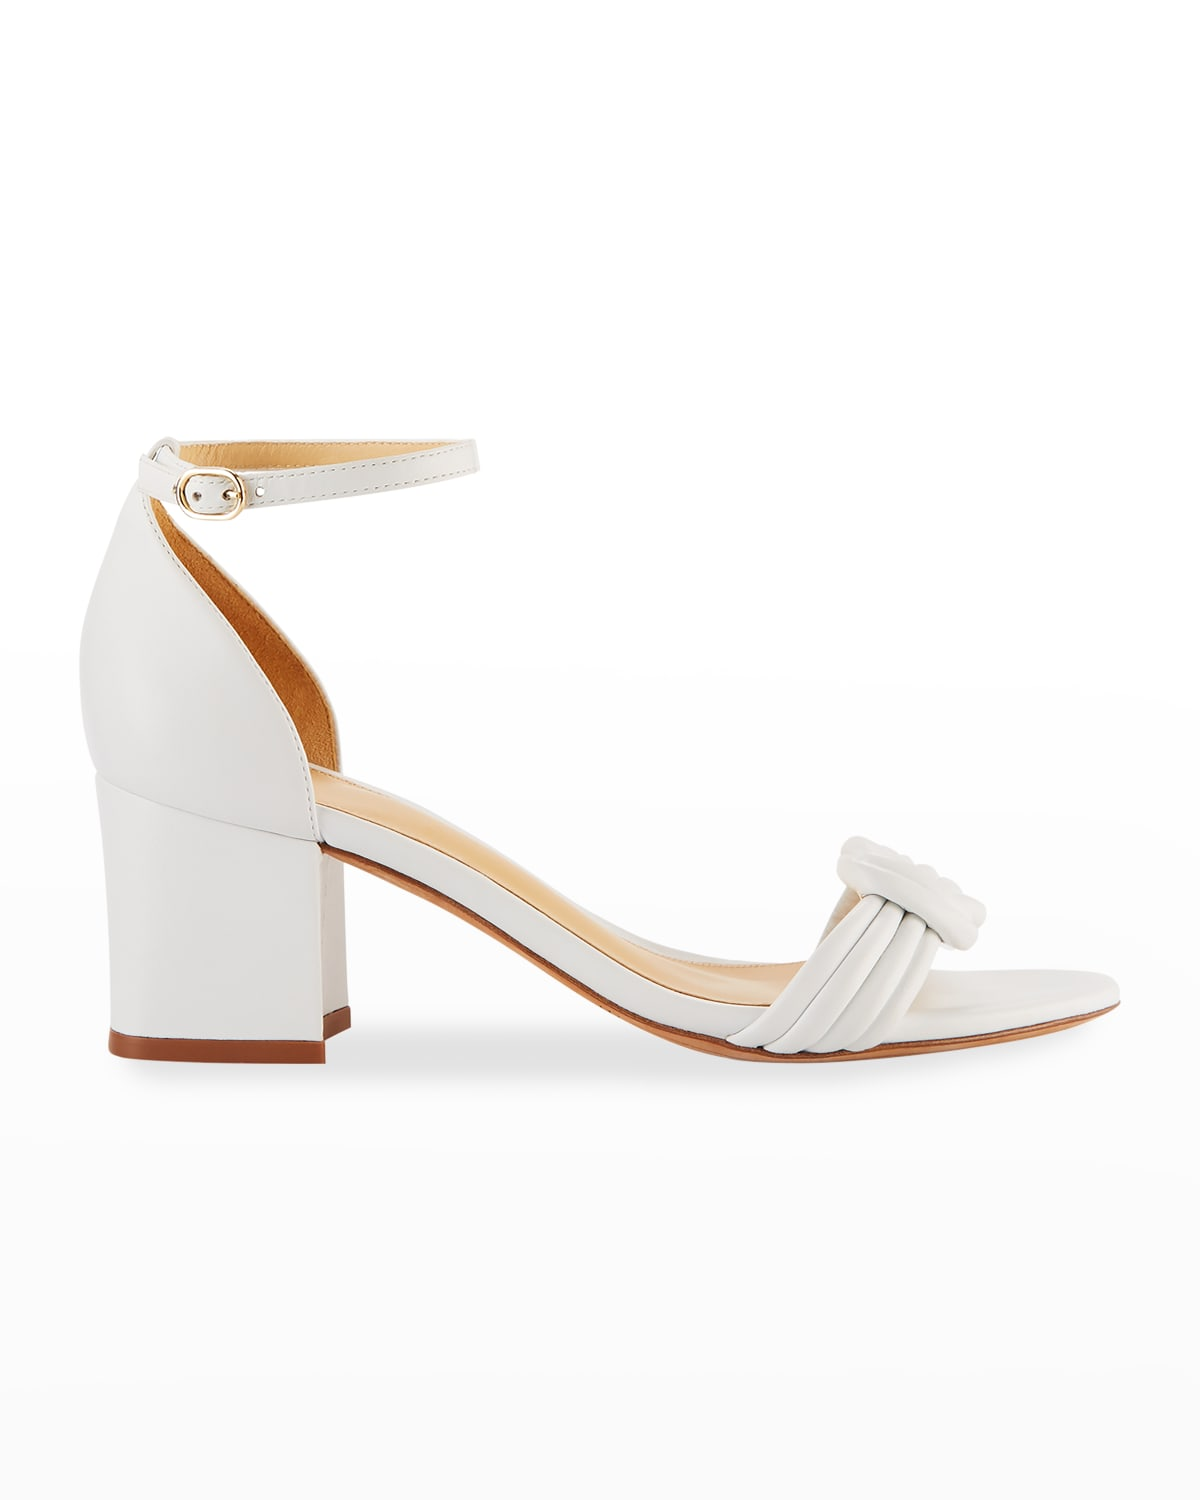 Vicky Knot Leather Sandals